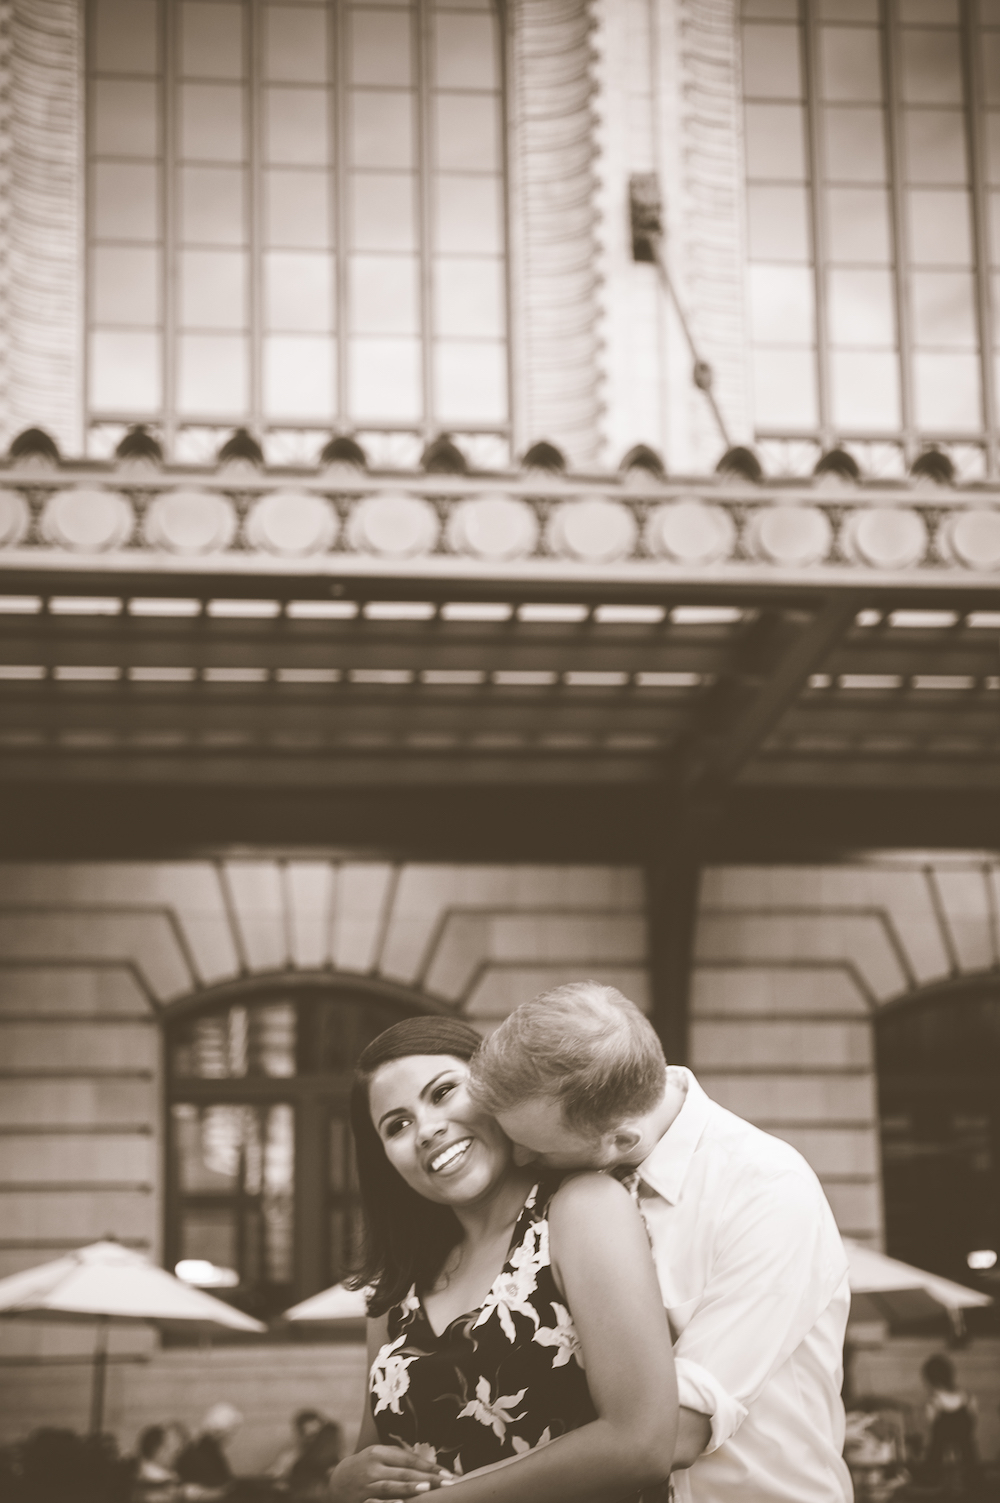 ck-Colorado-Engagement-Photography-0004.jpg